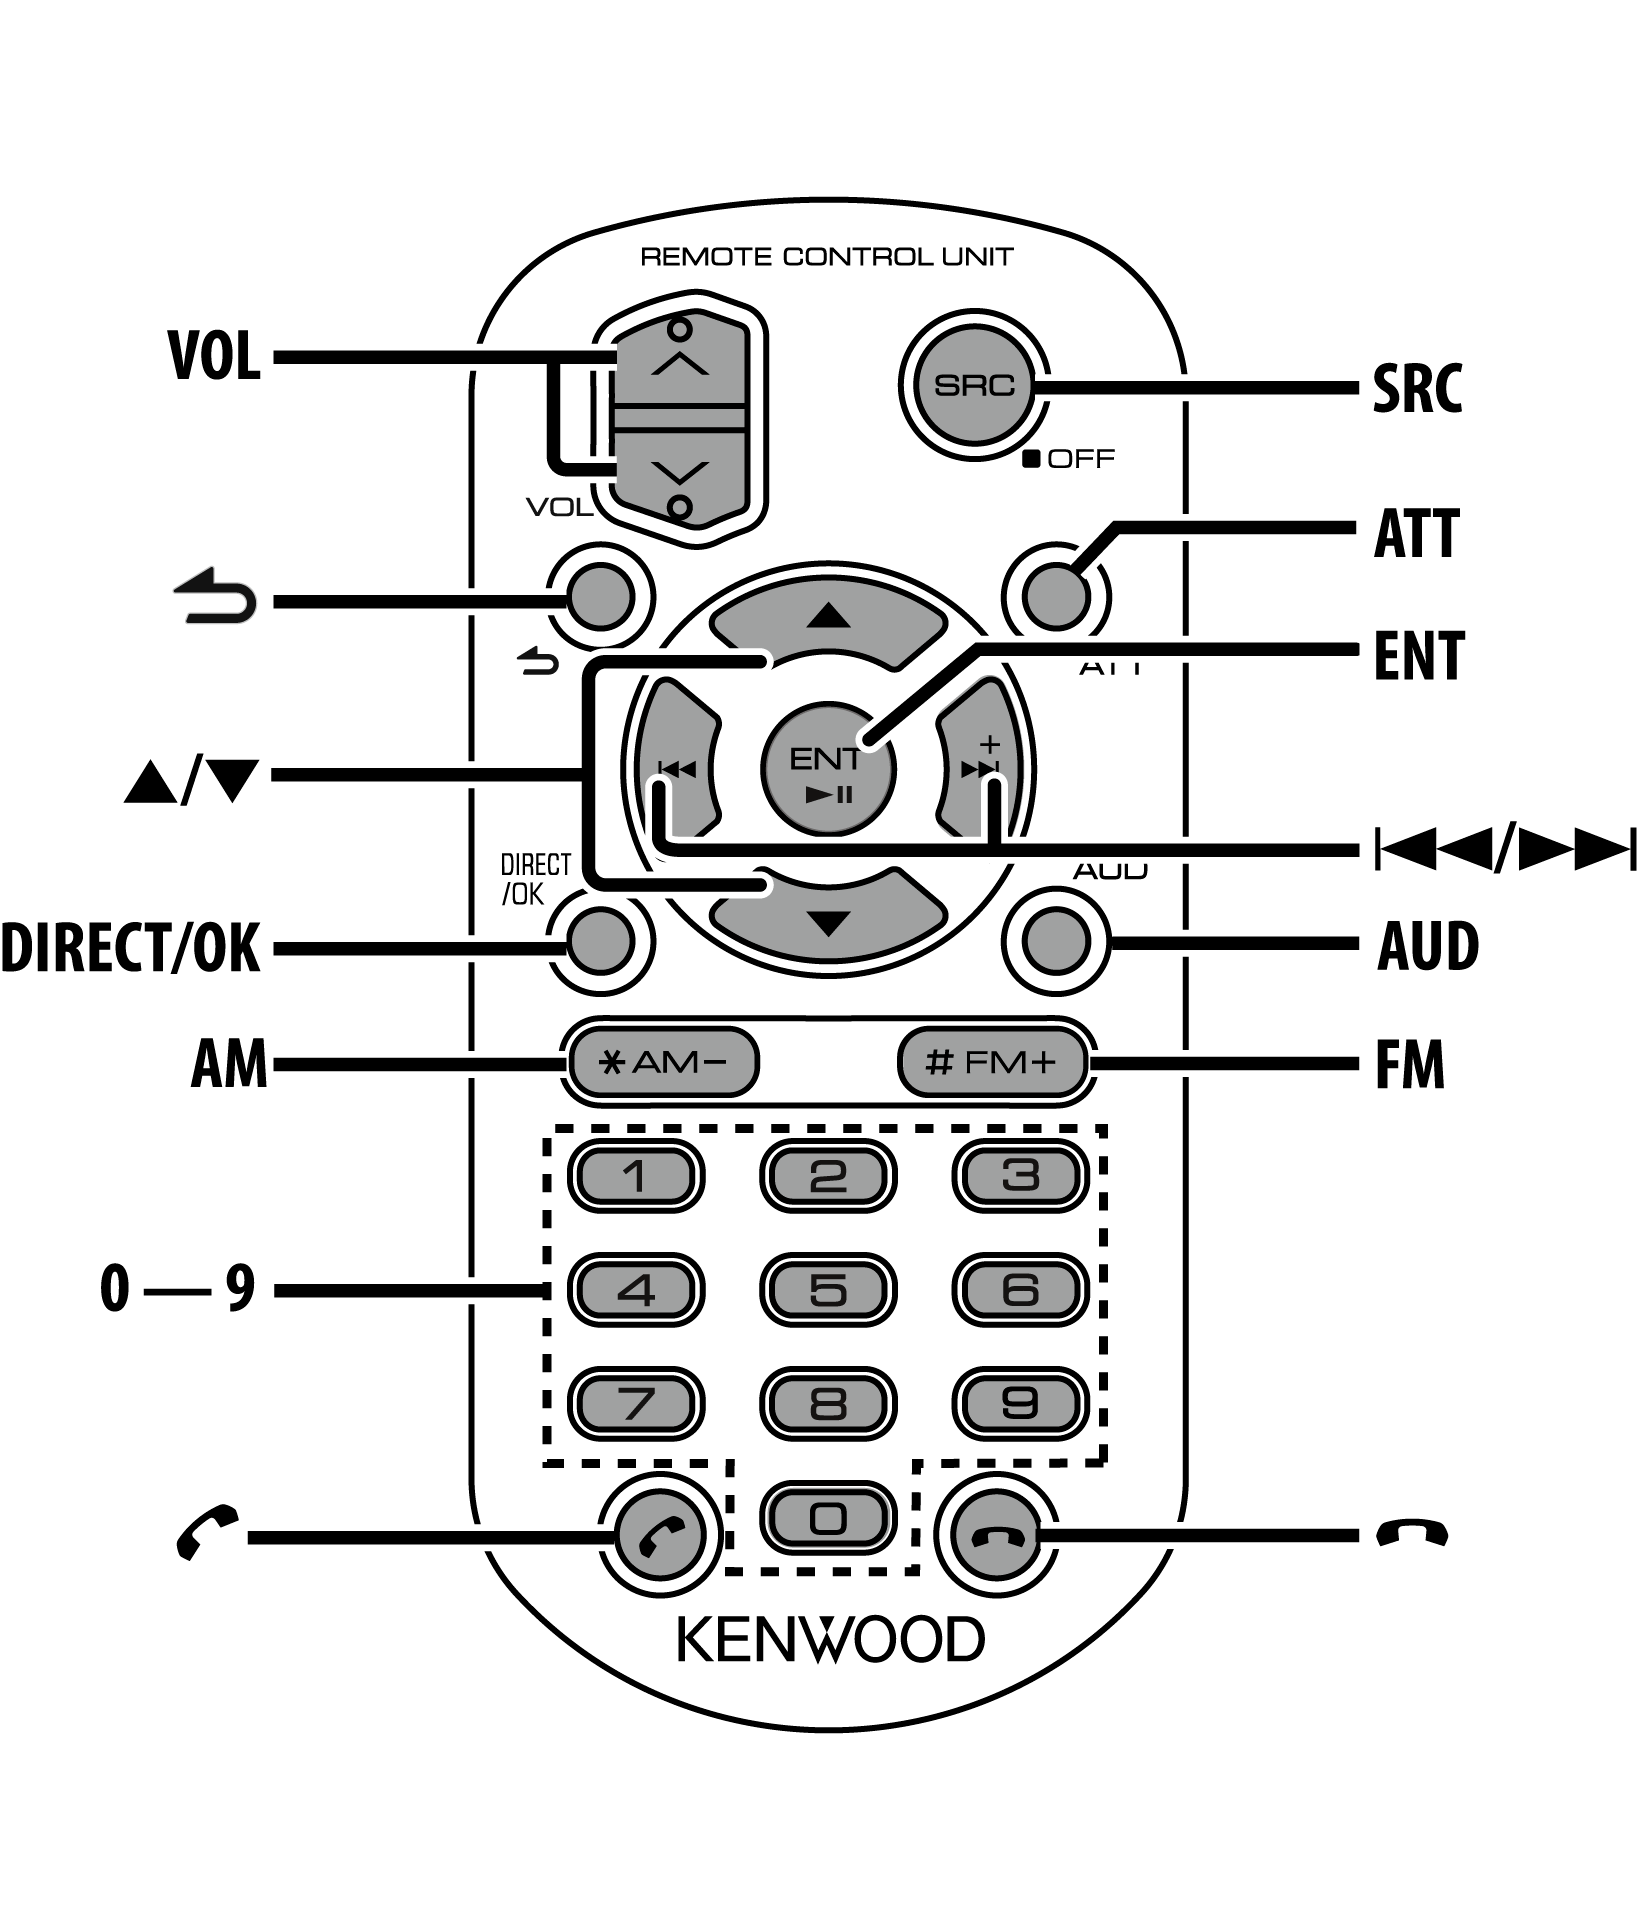 RC RC406 kdc x997 kdc bt955hd kdc x897 kdc bt855u kdc x697 kdc 655u kmr 555u kenwood excelon kdc-x997 wiring diagram at crackthecode.co